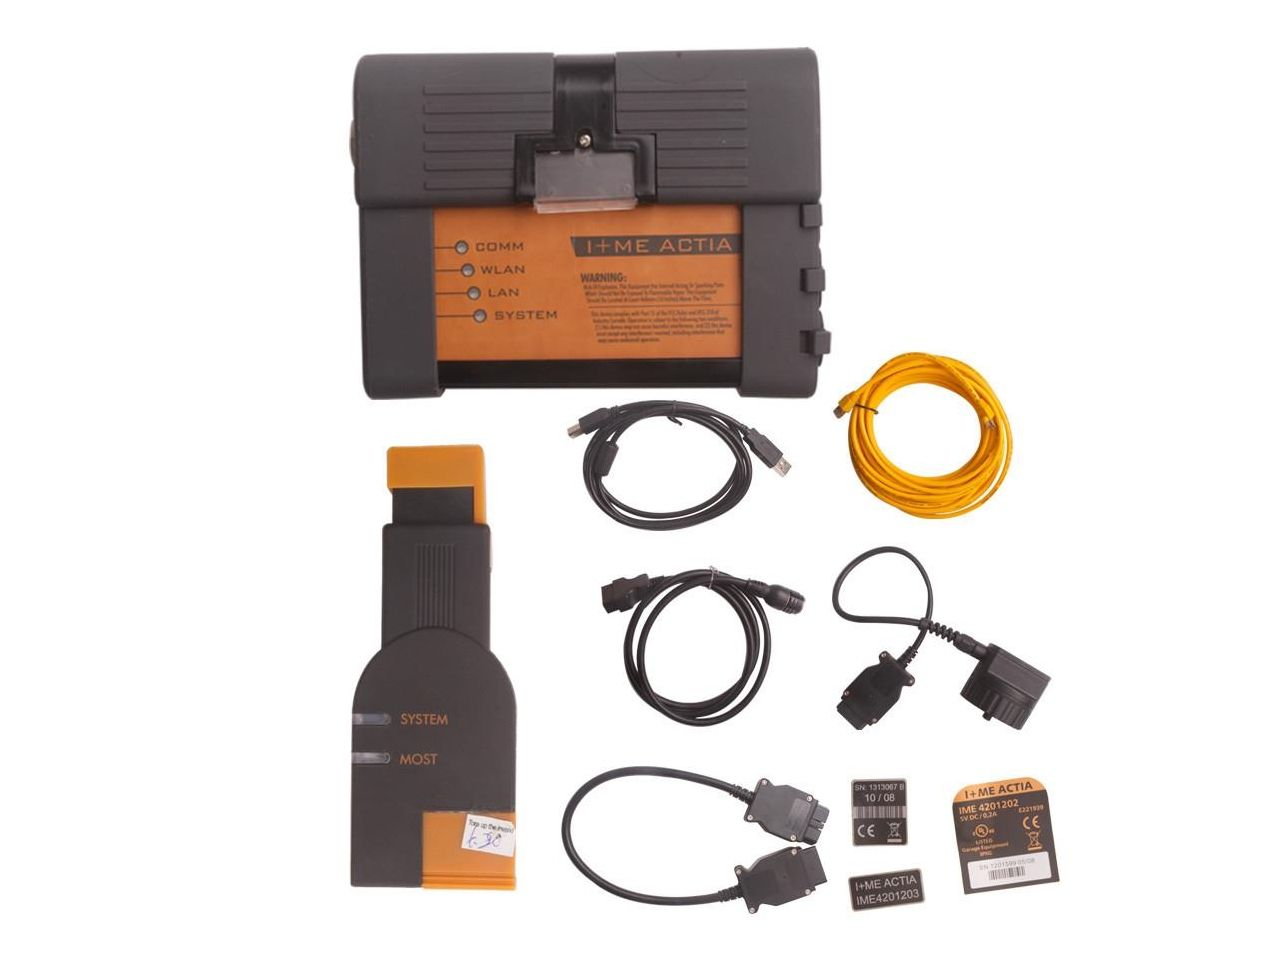 bmw icom a2 bmw diagnostic bwm icoma2 detector newegg pinterest. Black Bedroom Furniture Sets. Home Design Ideas